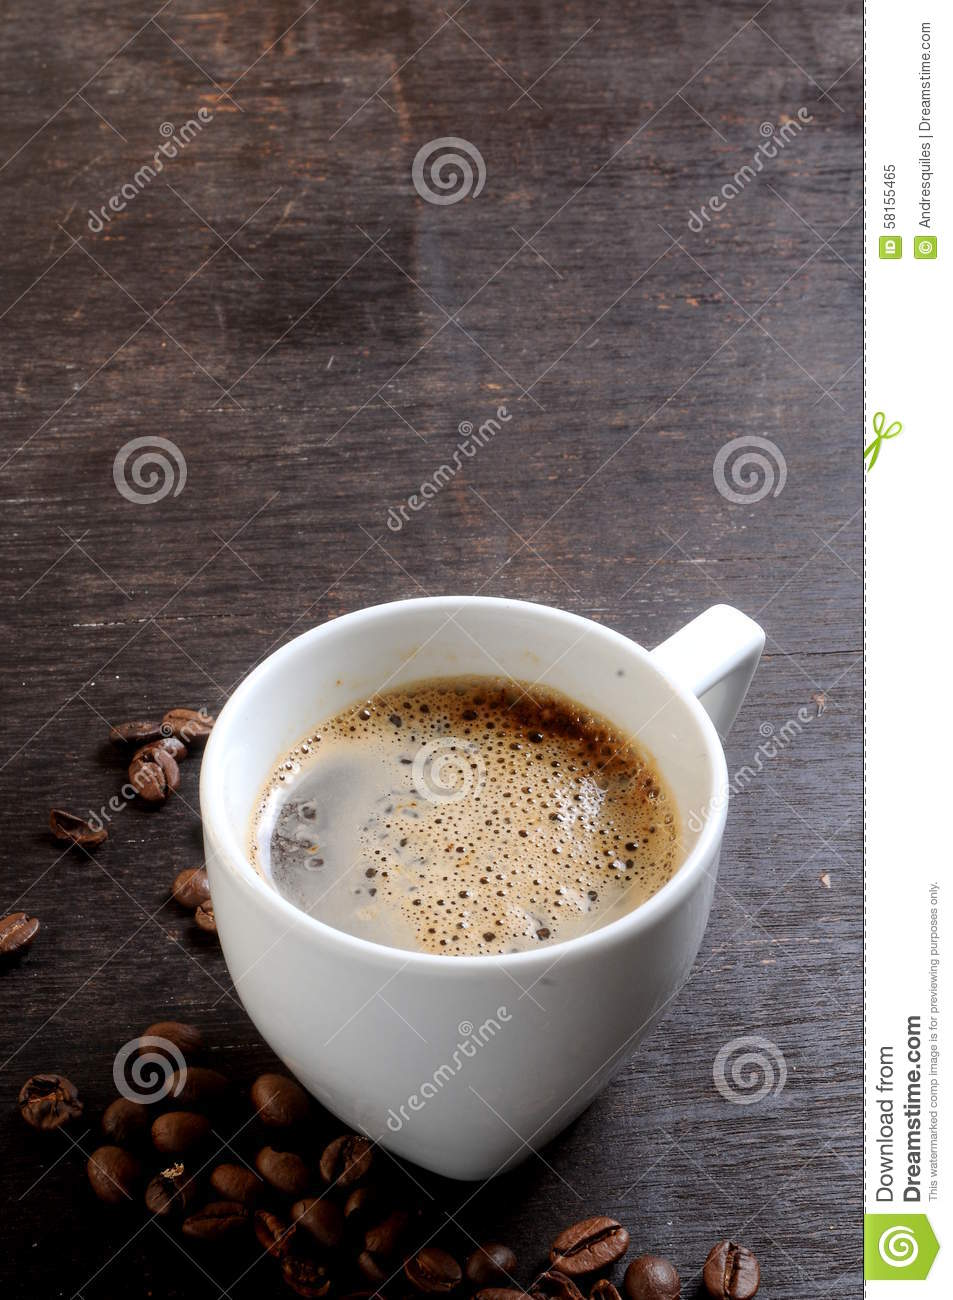 What Coffee Maker Makes The Hottest Cup Of Coffee : One Cup Of Hot Coffee Fresh Make Stock Photo - Image: 58155465